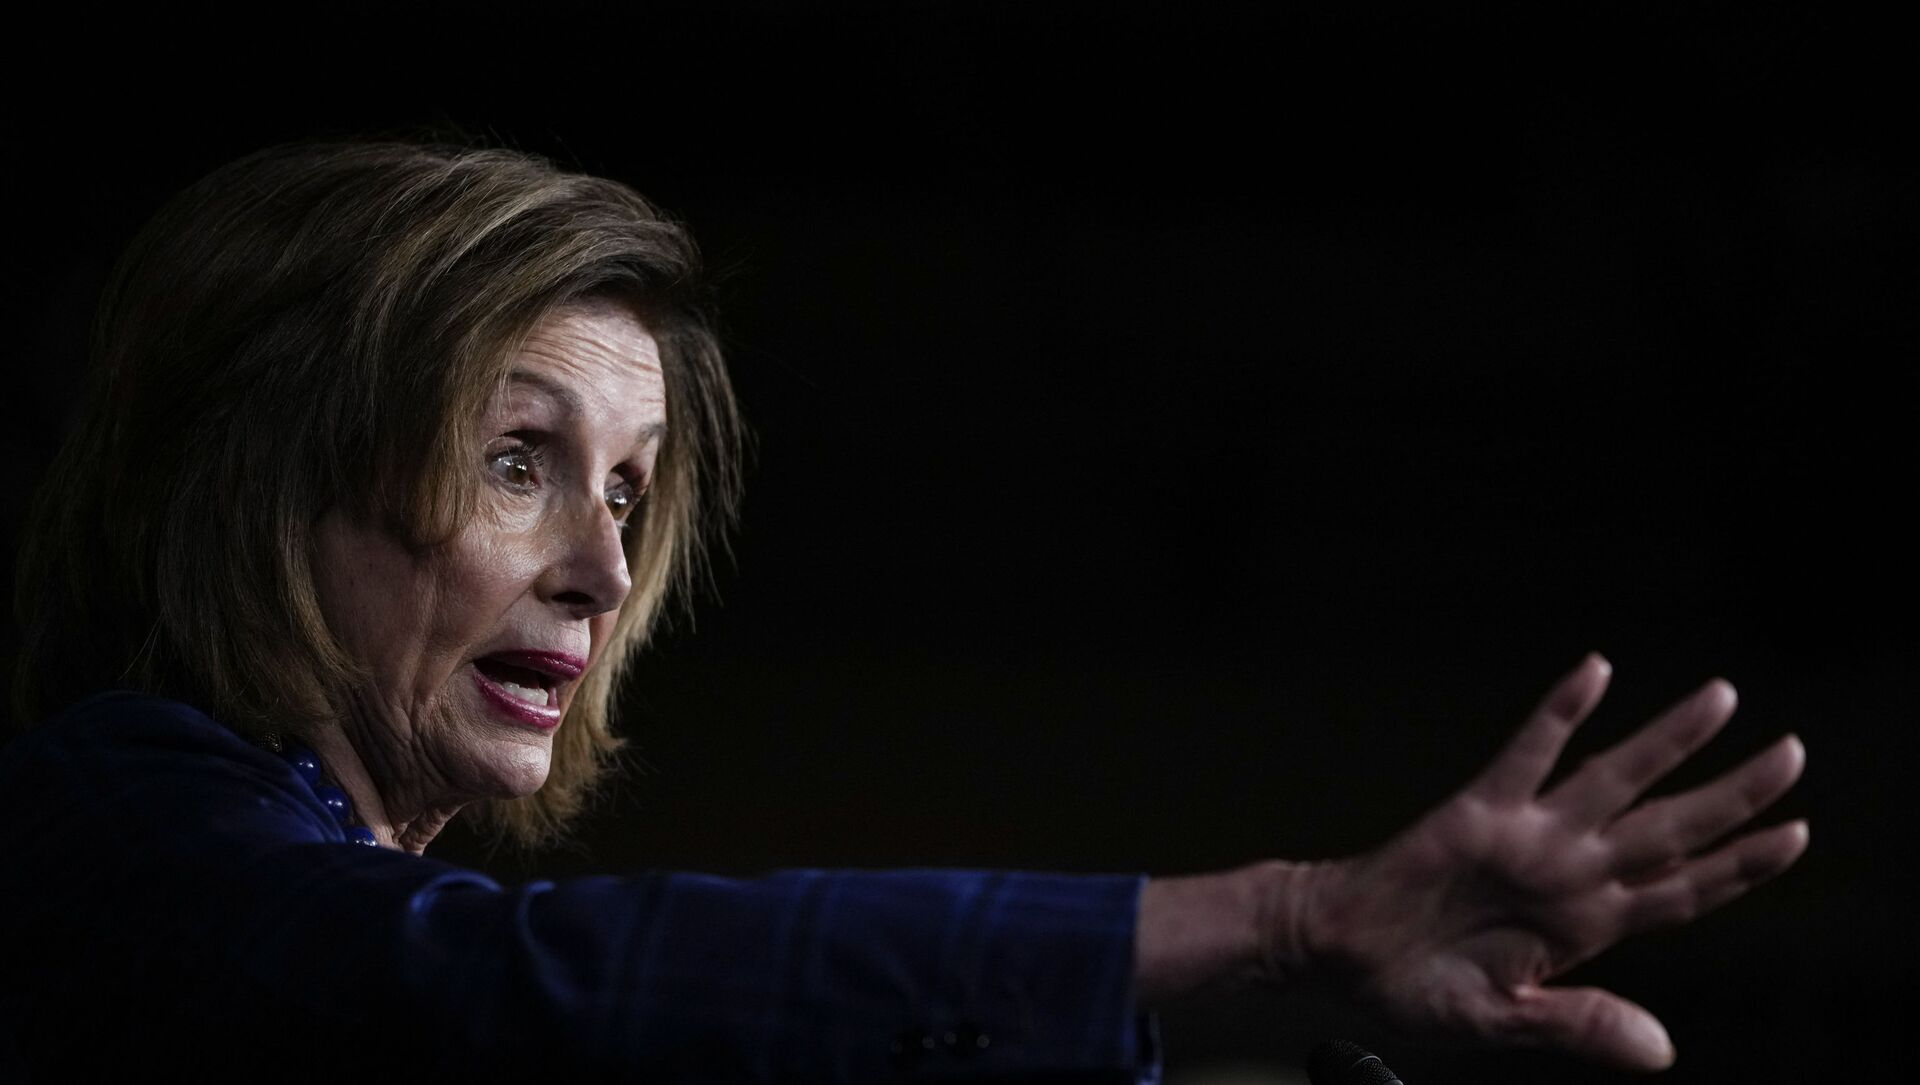 Speaker of the House Nancy Pelosi (D-CA) speaks during a news conference on Capitol Hill July 30, 2021 in Washington, DC. Pelosi and House Democratic leadership held the news conference to highlight their legislative agenda.  - Sputnik International, 1920, 02.08.2021